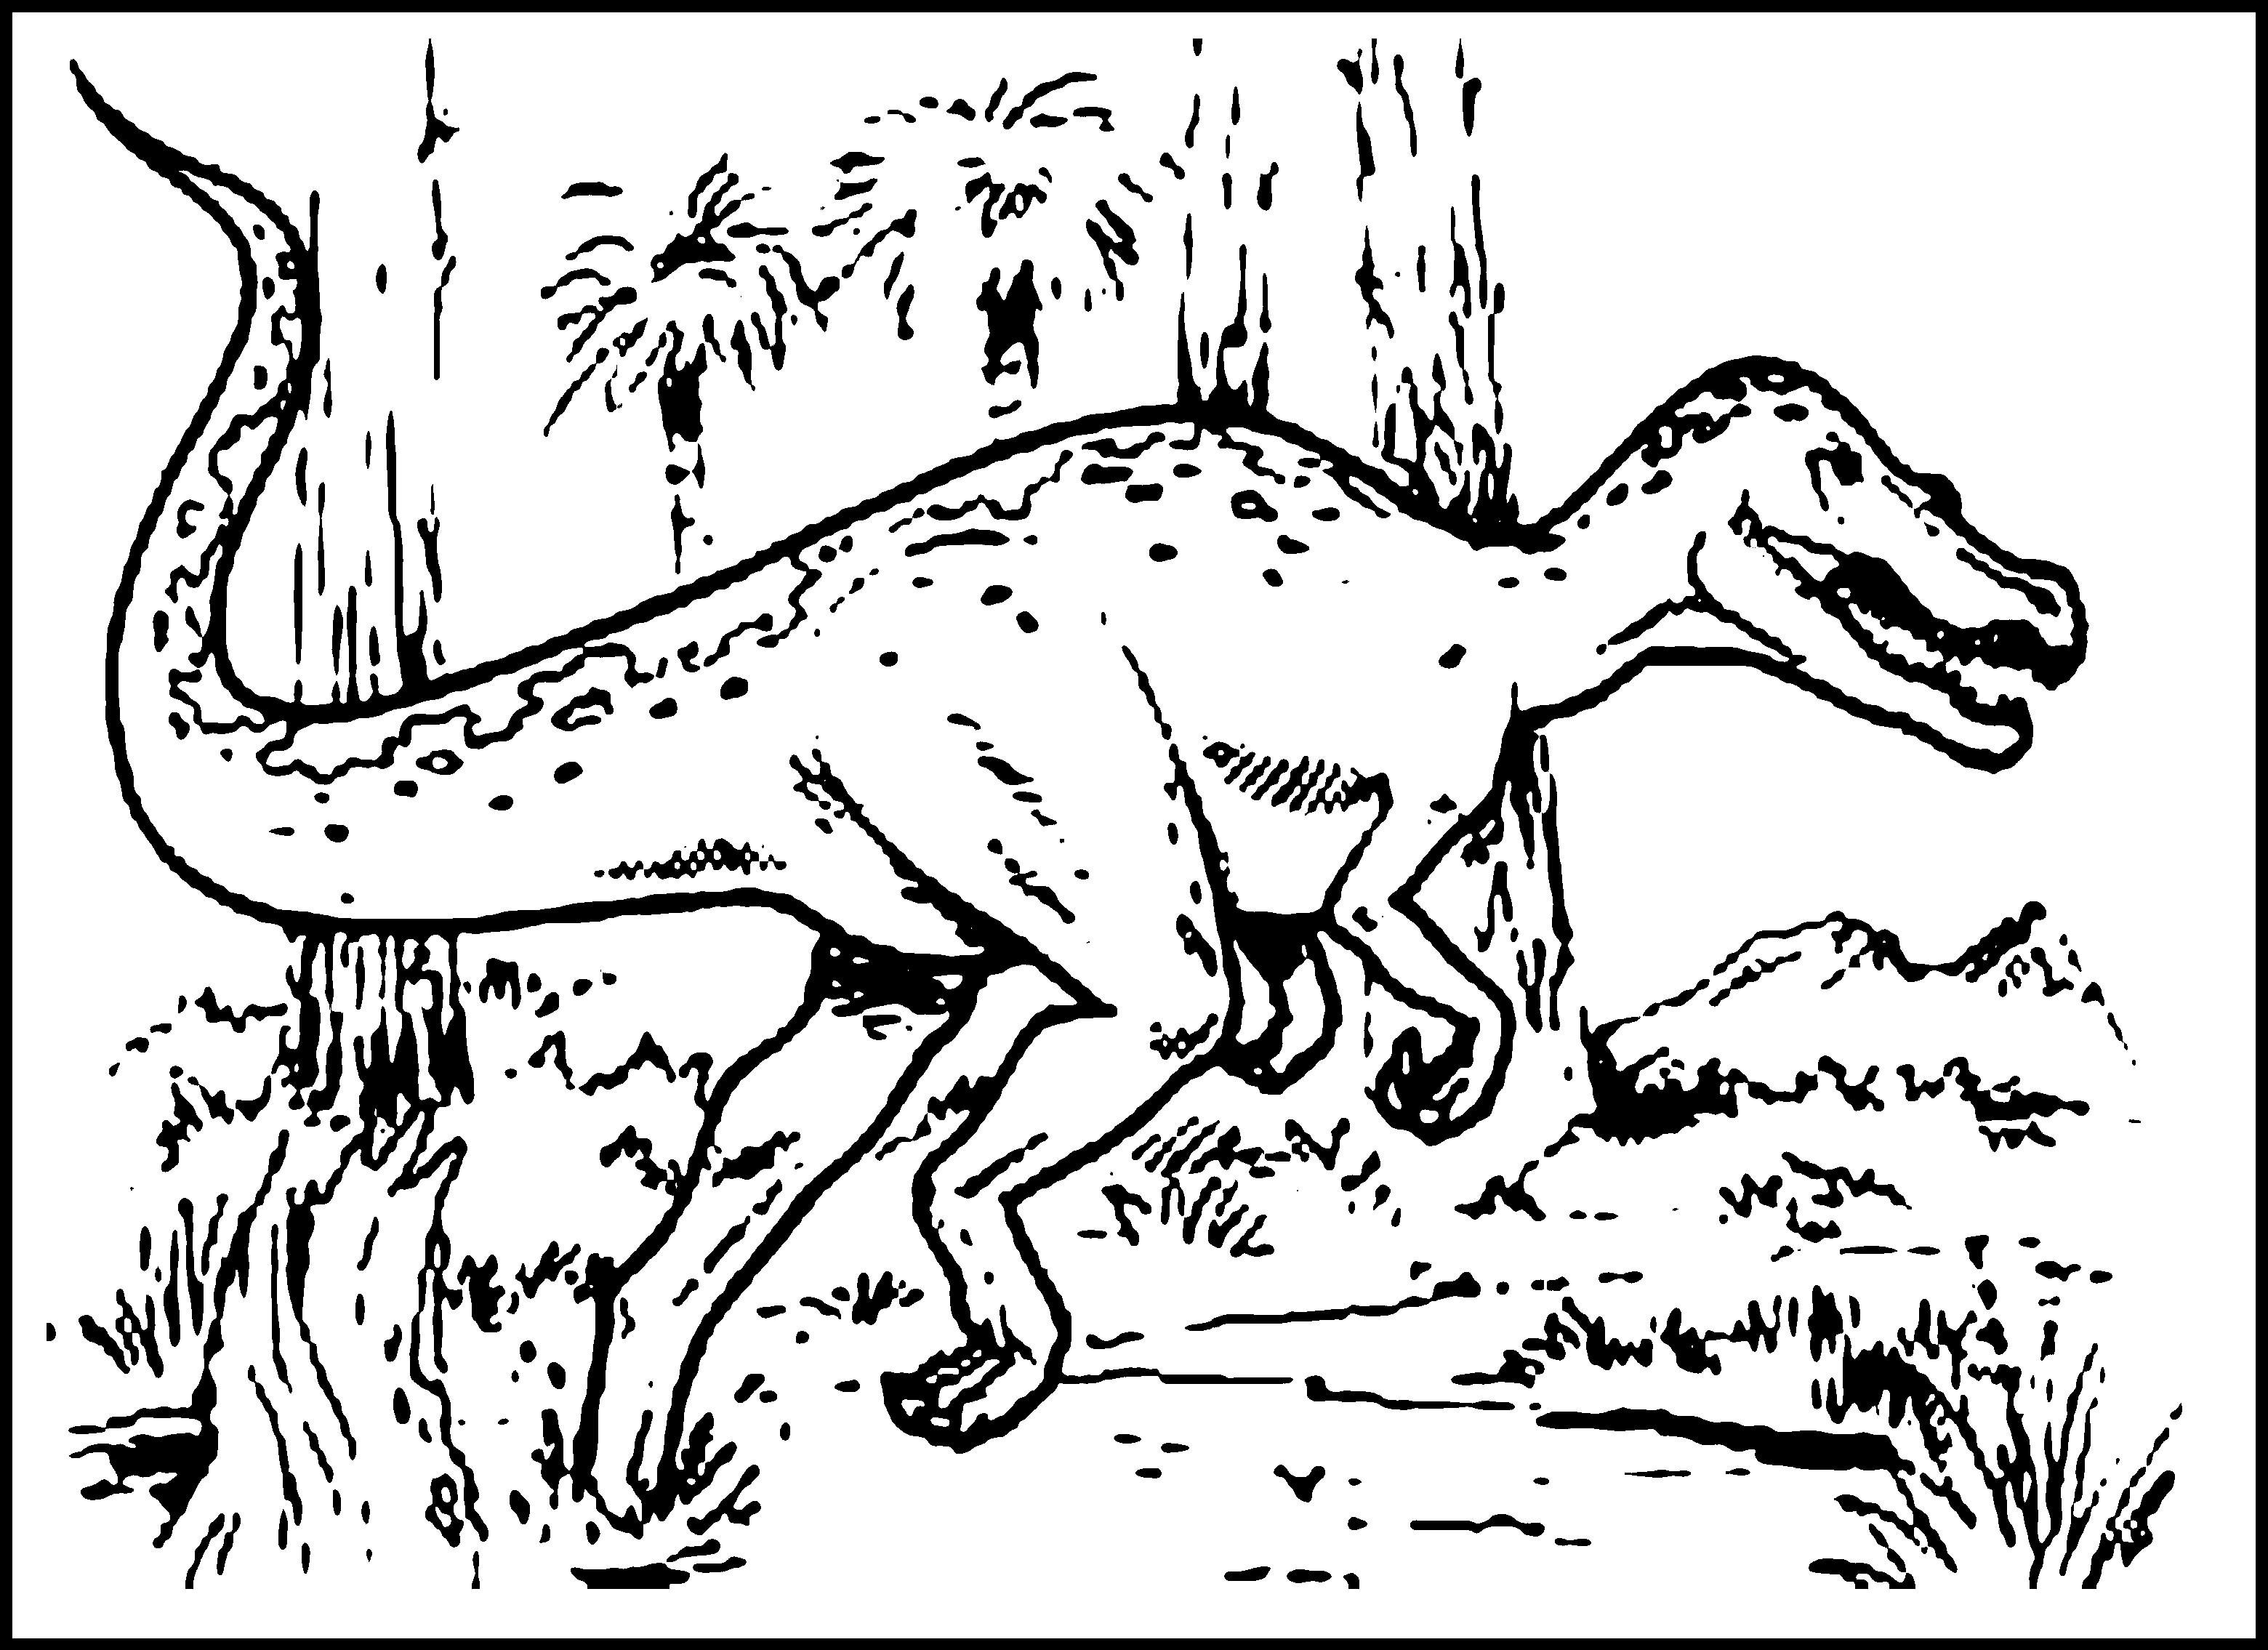 dinosaurs to colour in cute dinosaur coloring pages coloring home dinosaurs to in colour